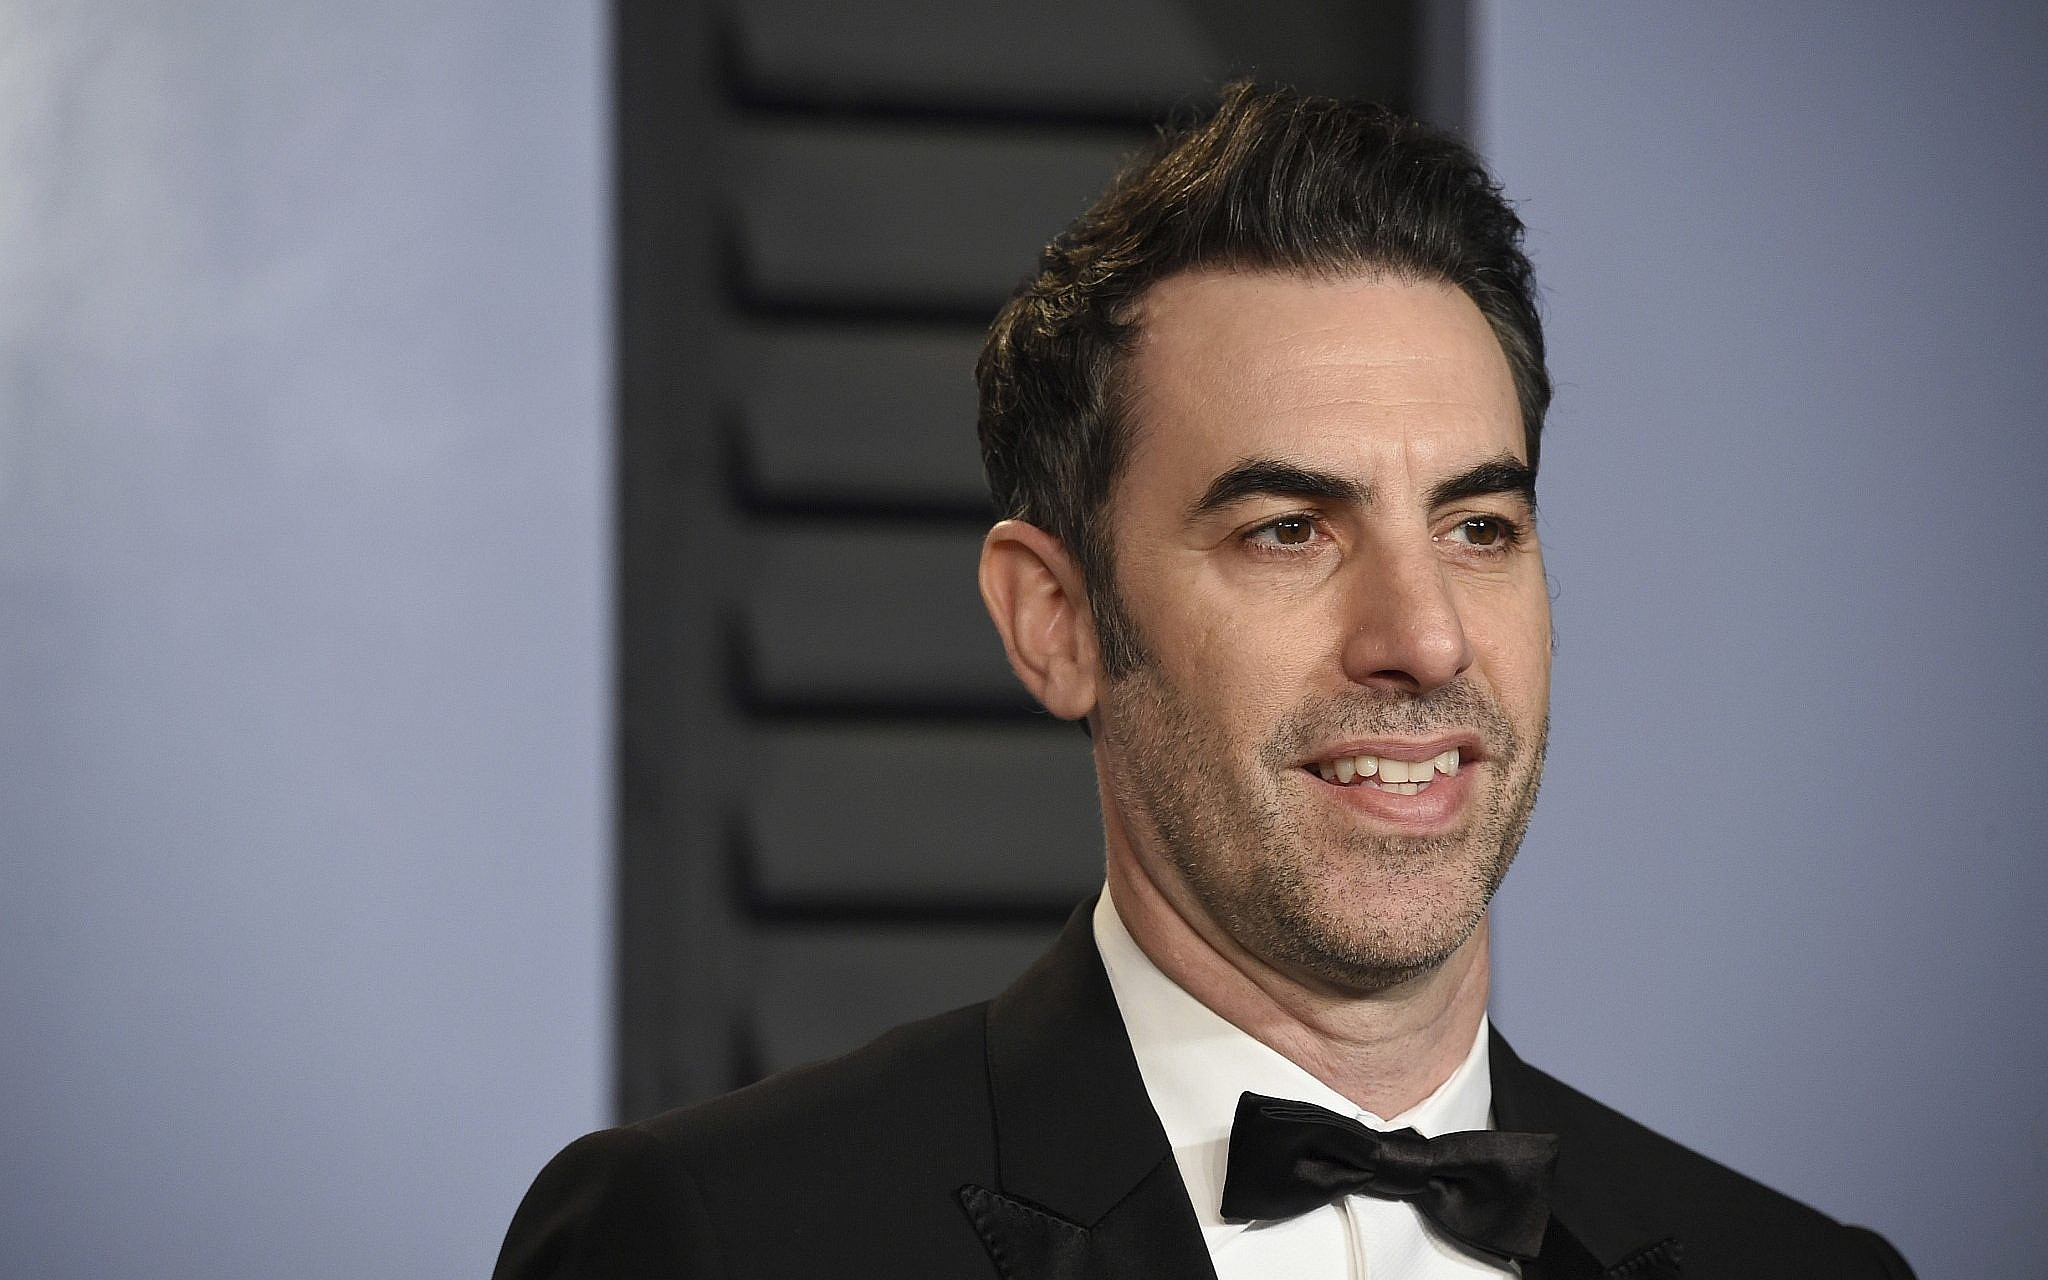 Sacha Baron Cohen's new Showtime series premieres this Sunday